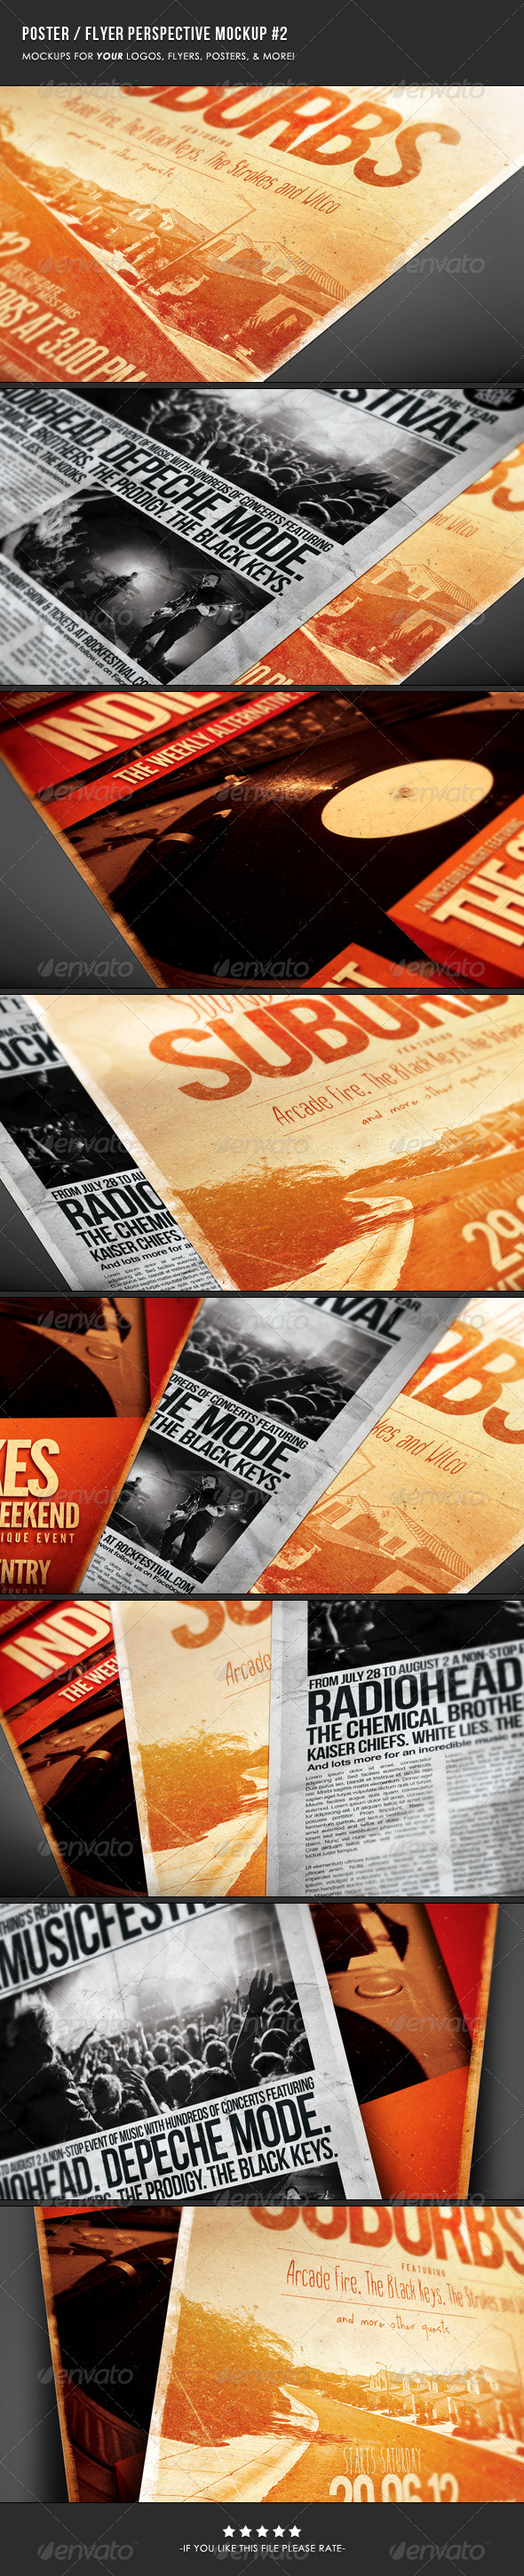 Poster & Flyer Perspective Mockup #2 - Flyers Print